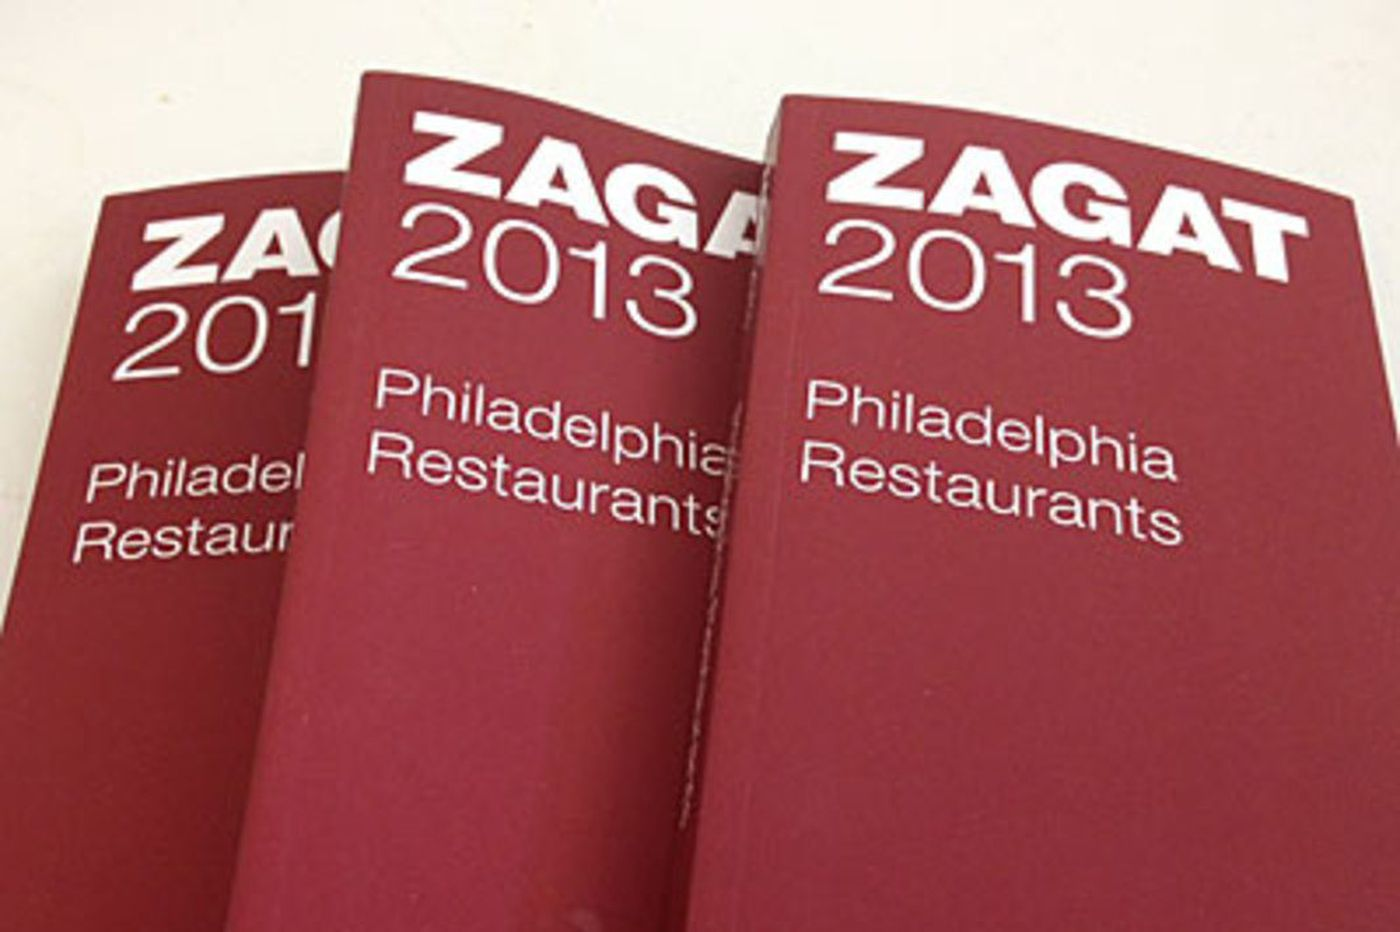 How Google almost destroyed Zagat